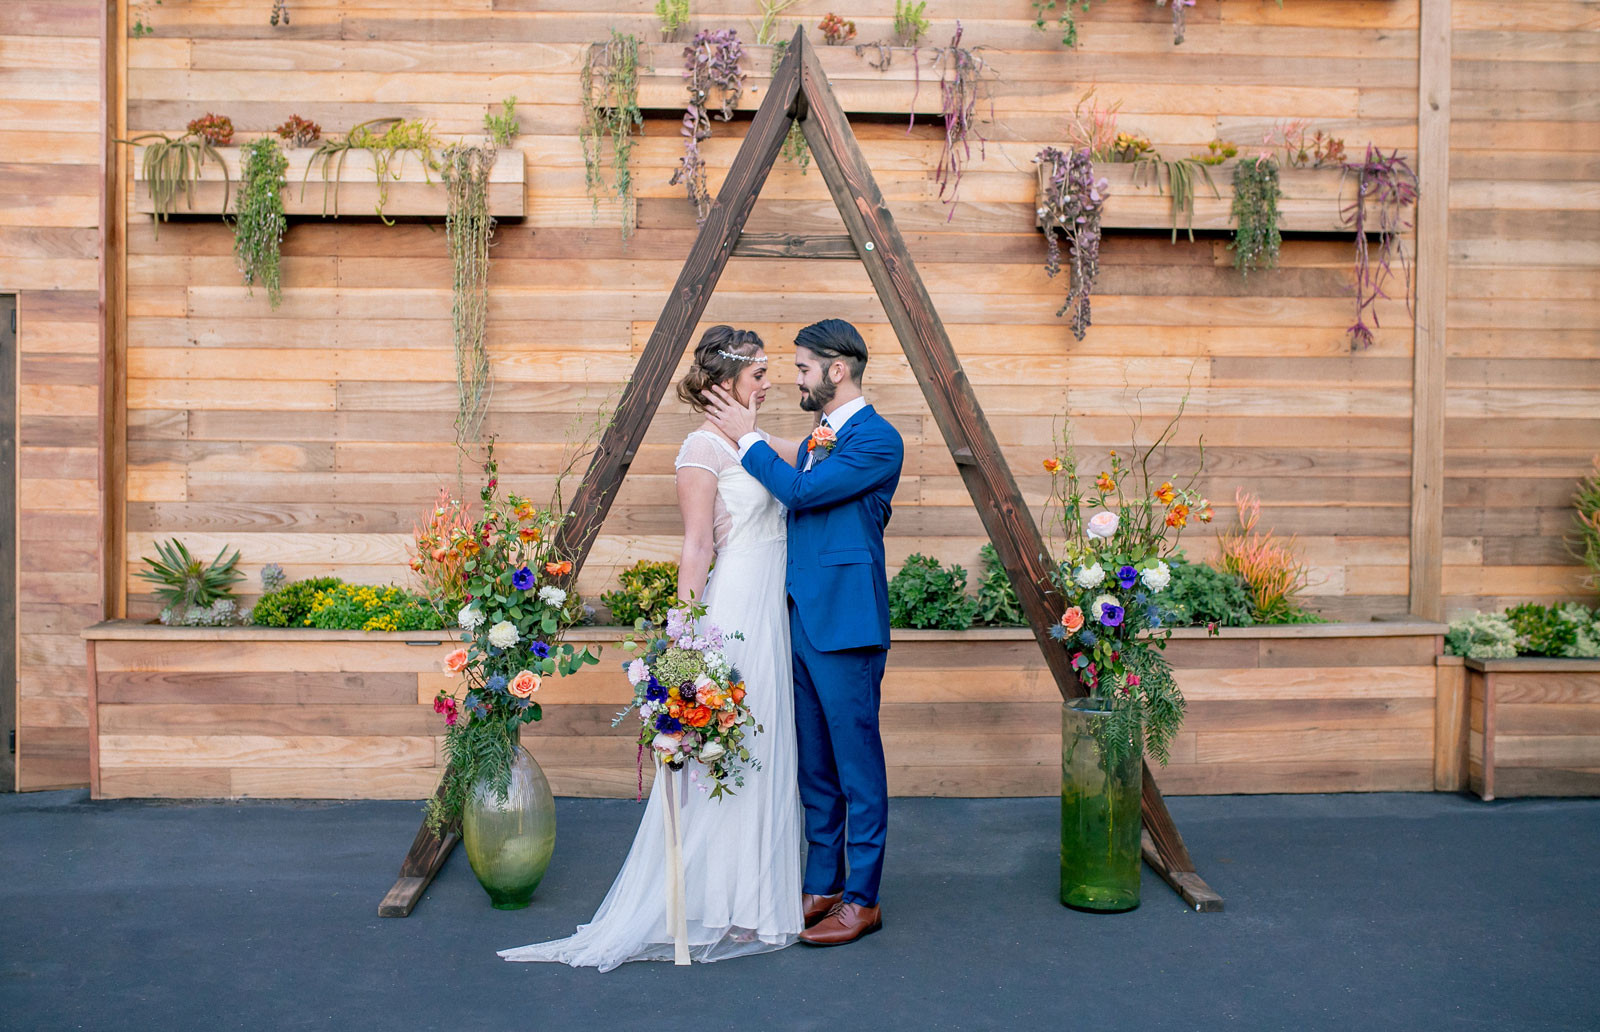 Best ideas about DIY Wedding Arch Frame . Save or Pin Ideas for A FRAMES Wedding Ceremony Arches Style Motivation Now.